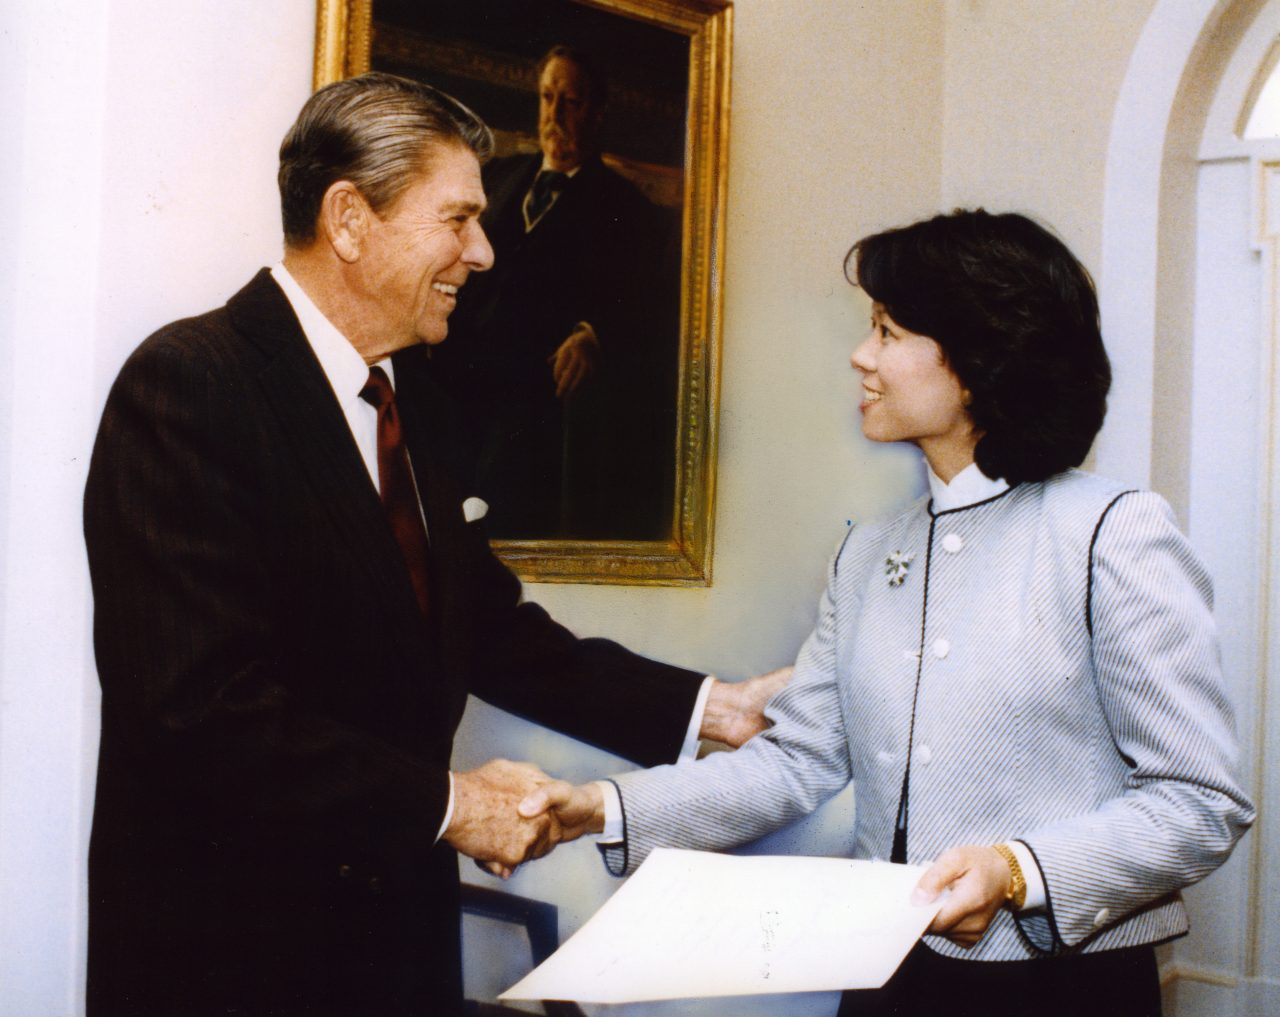 Elaine Chao receiving her White House Fellow certificate from President Ronald Reagan in the Cabinet Room of the White House, where years later, Elaine would attend cabinet meetings as the Secretary of Labor & then, as Secretary of Transportation.